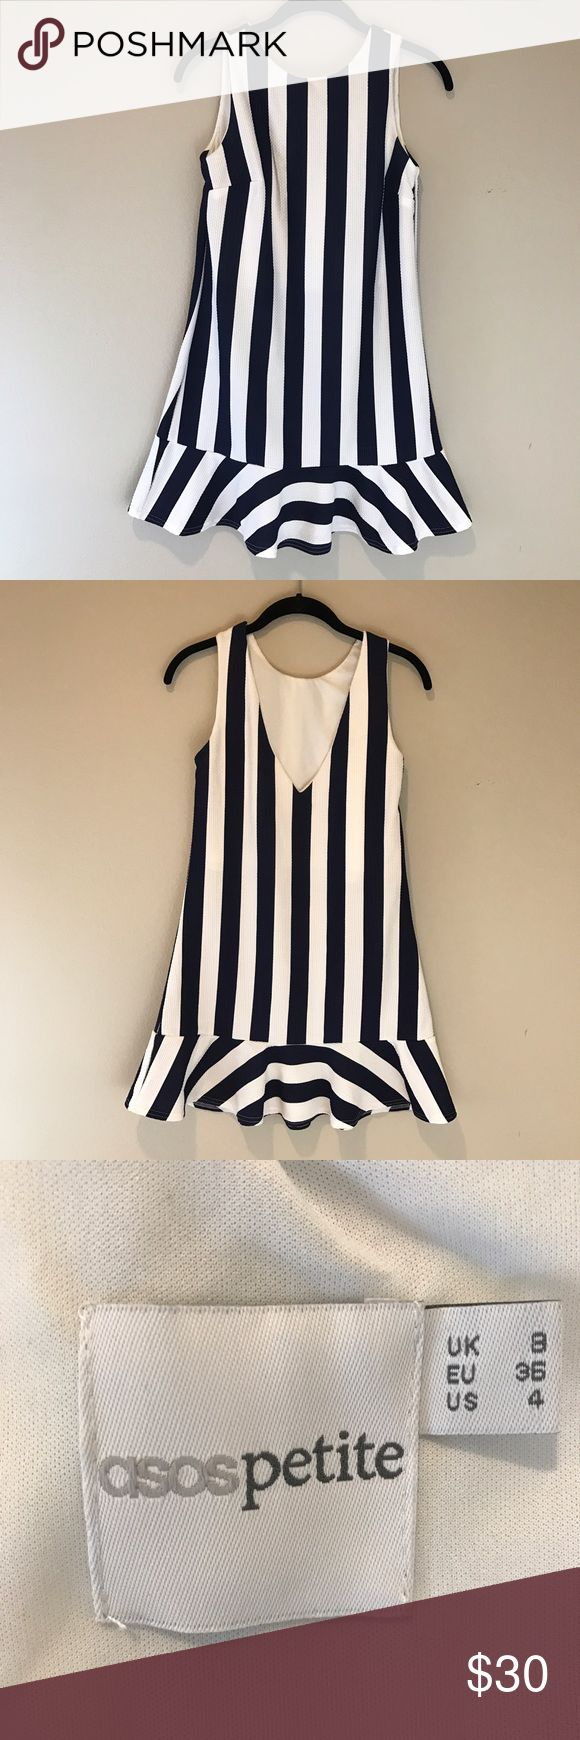 ASOS Striped Peplum Tunic Dress This can be worn as a Tunic or short dress. The Peplum skirt gives this a flirty fit! Nautical stripes in navy and white keep it from looking too girly. It's perfect! **Sizing is Petite** ASOS Dresses